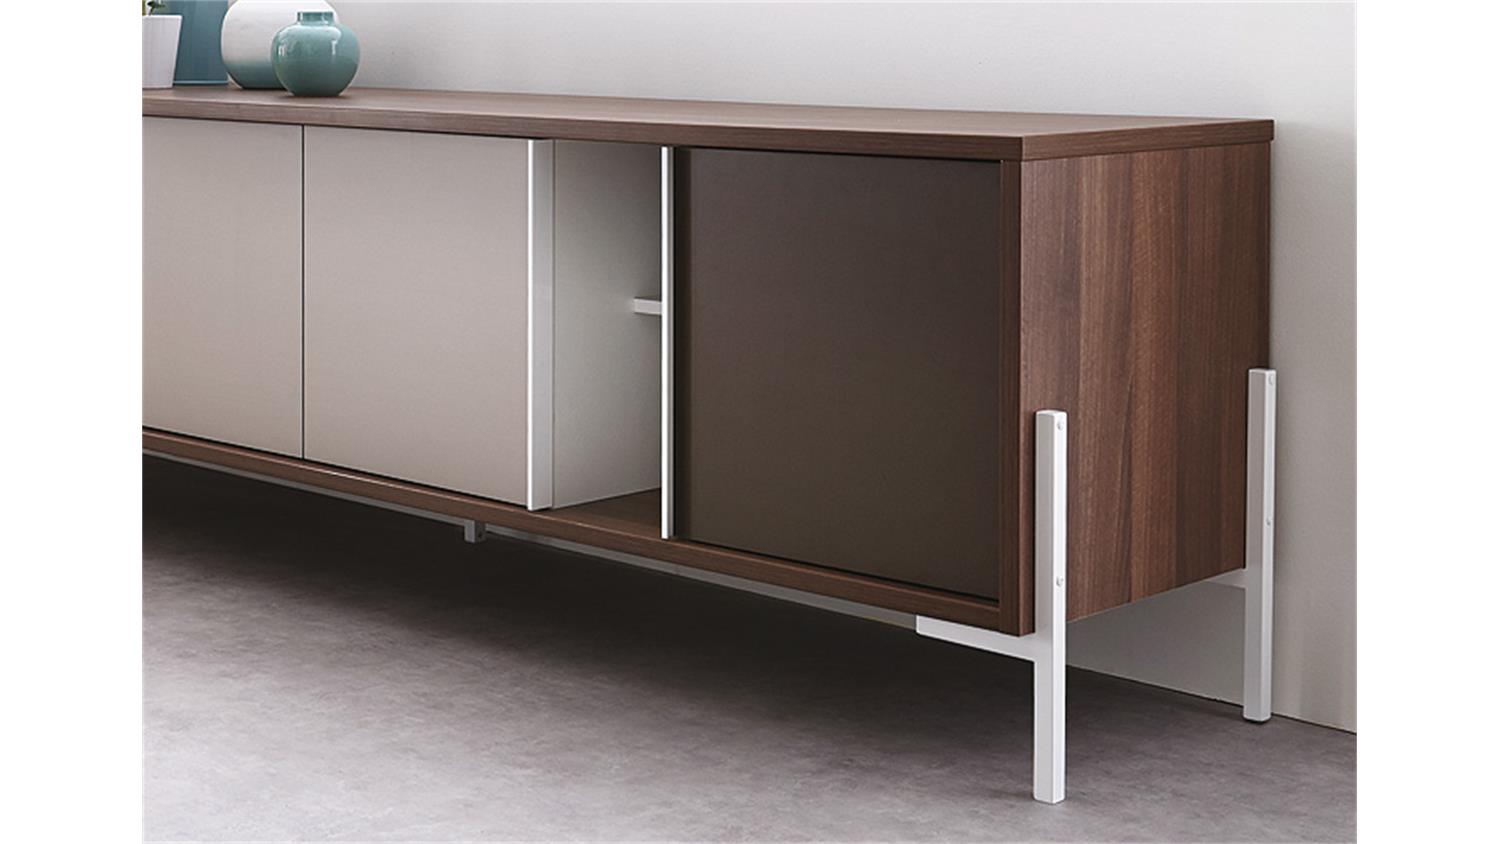 anrichte vogue sideboard lowboard in nussbaum braun und wei. Black Bedroom Furniture Sets. Home Design Ideas